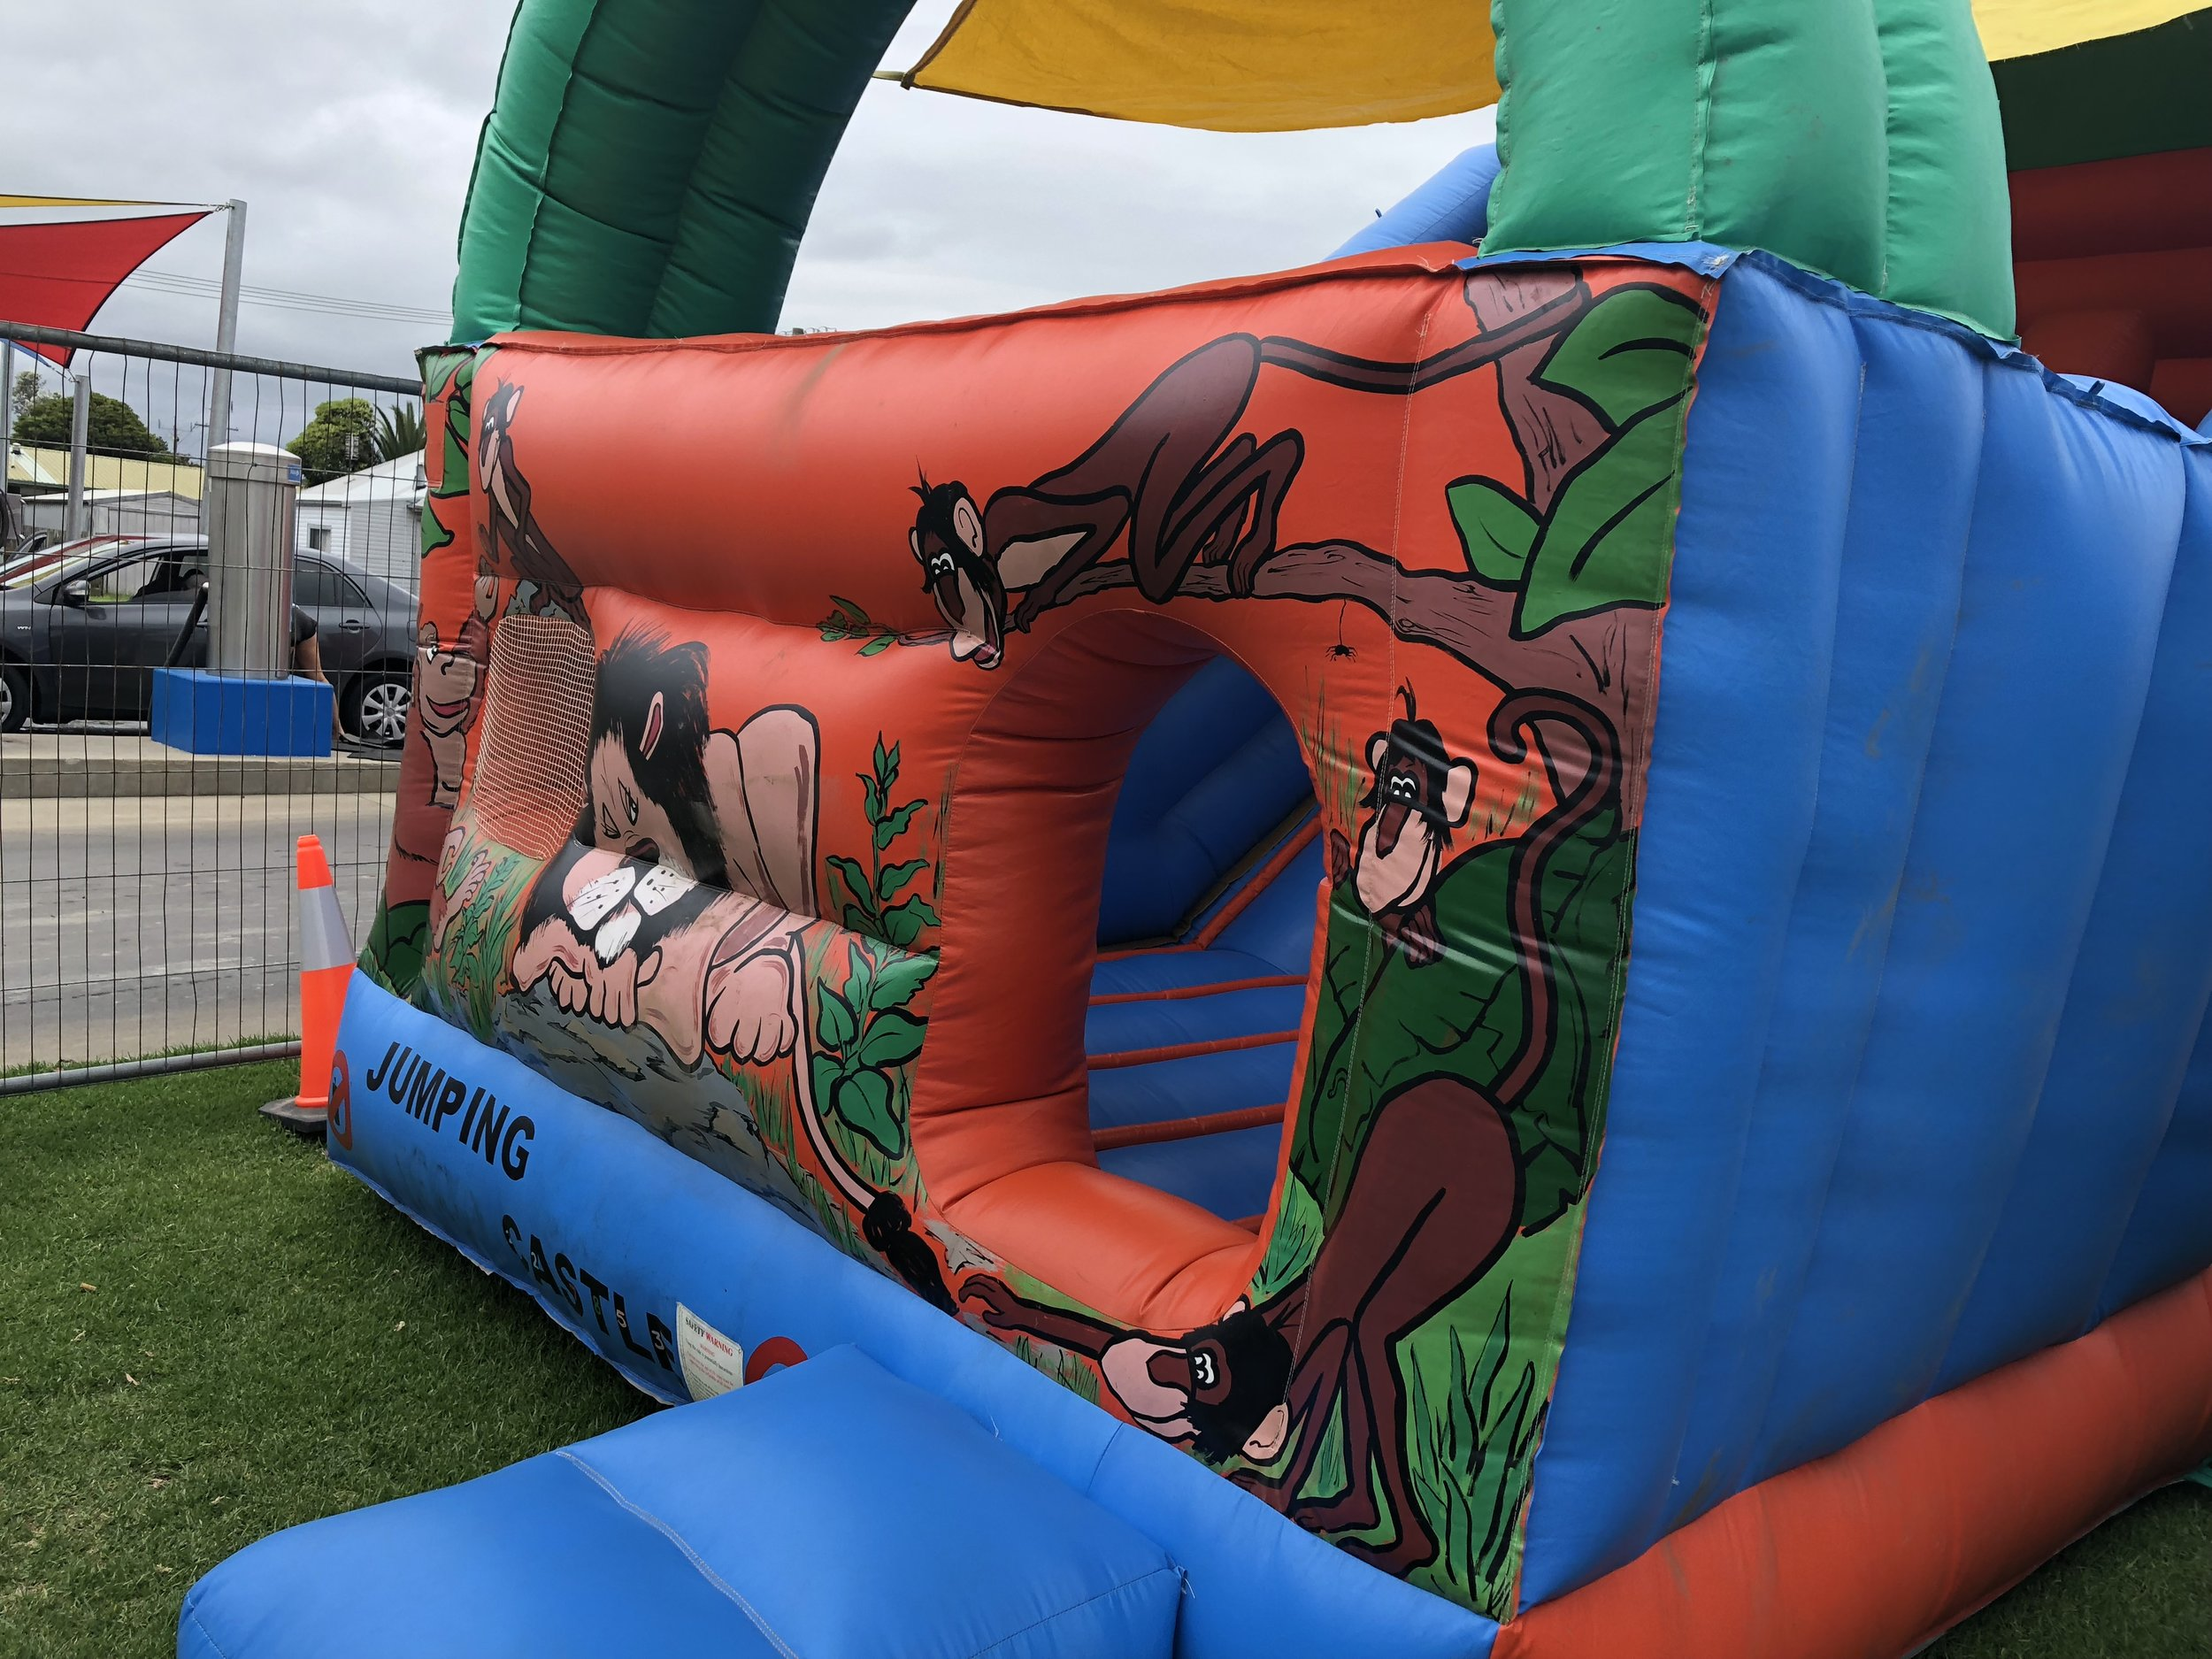 Combo Slide - This Castle has a small Jumping area with a rope ladder to climb and then a slide to bounce down.For prices please contact us with your event location and details and we will send back a quote.Combo can be hired for self use at you event or with an operator.